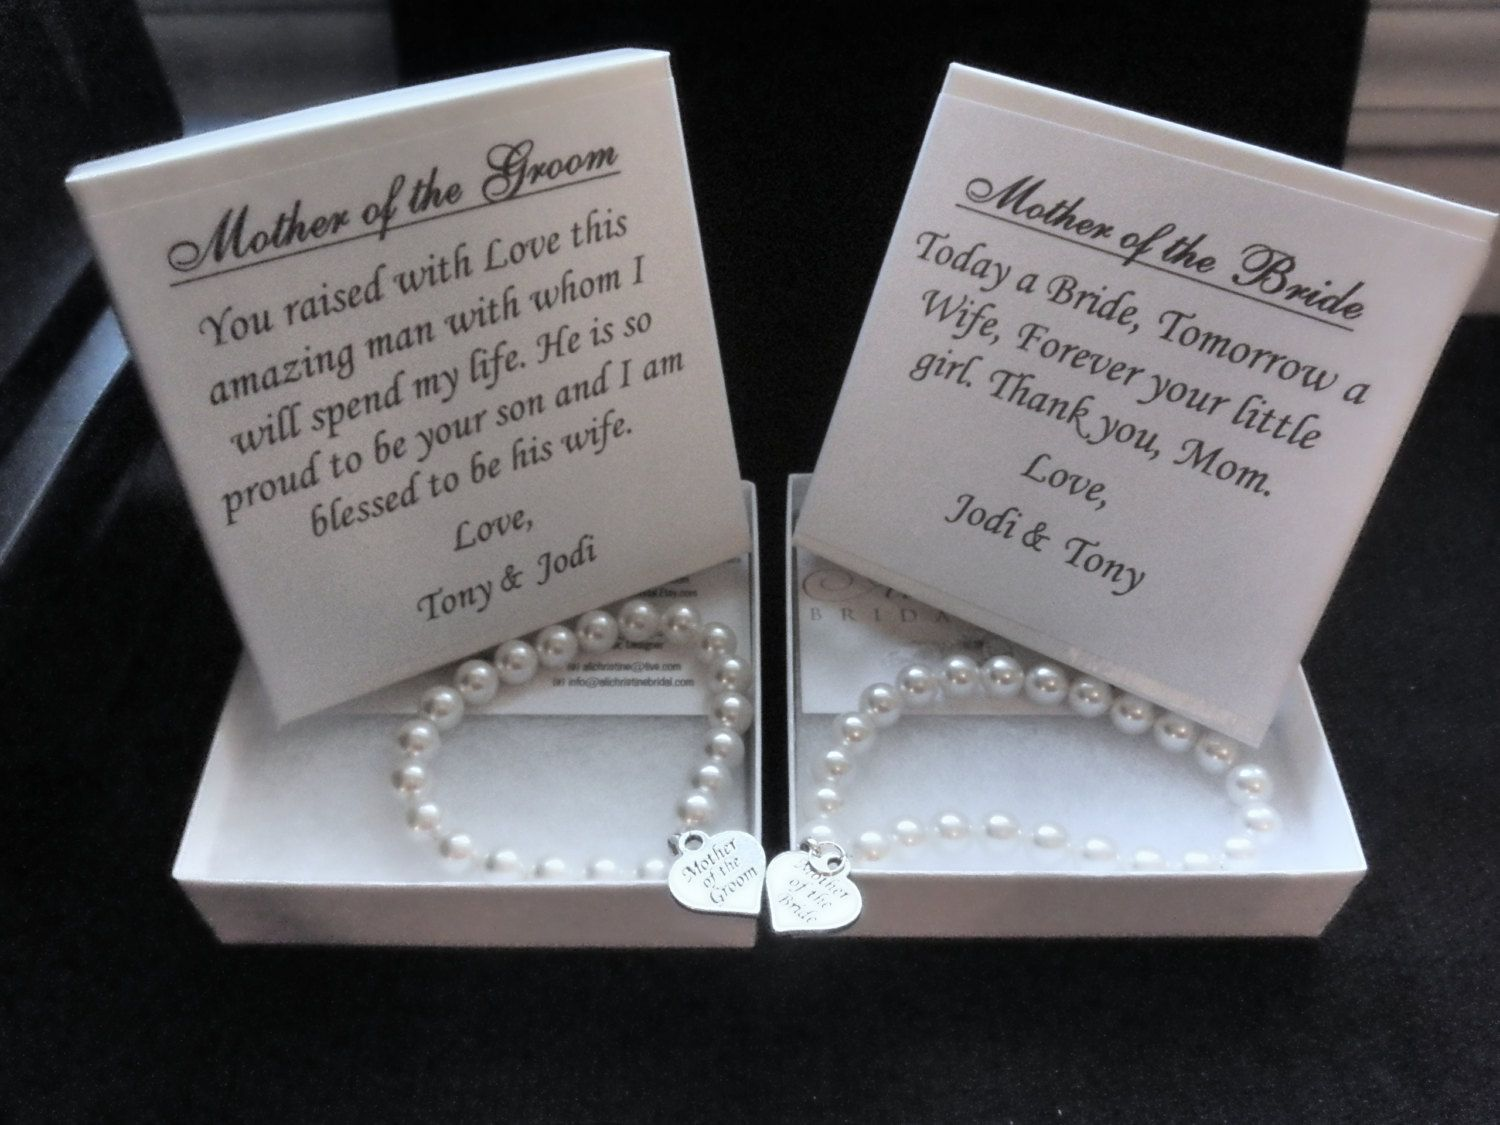 Mother Of The Groom Gift: Mother Of The Bride Pearl Bracelet Gift Set, Mother Of The